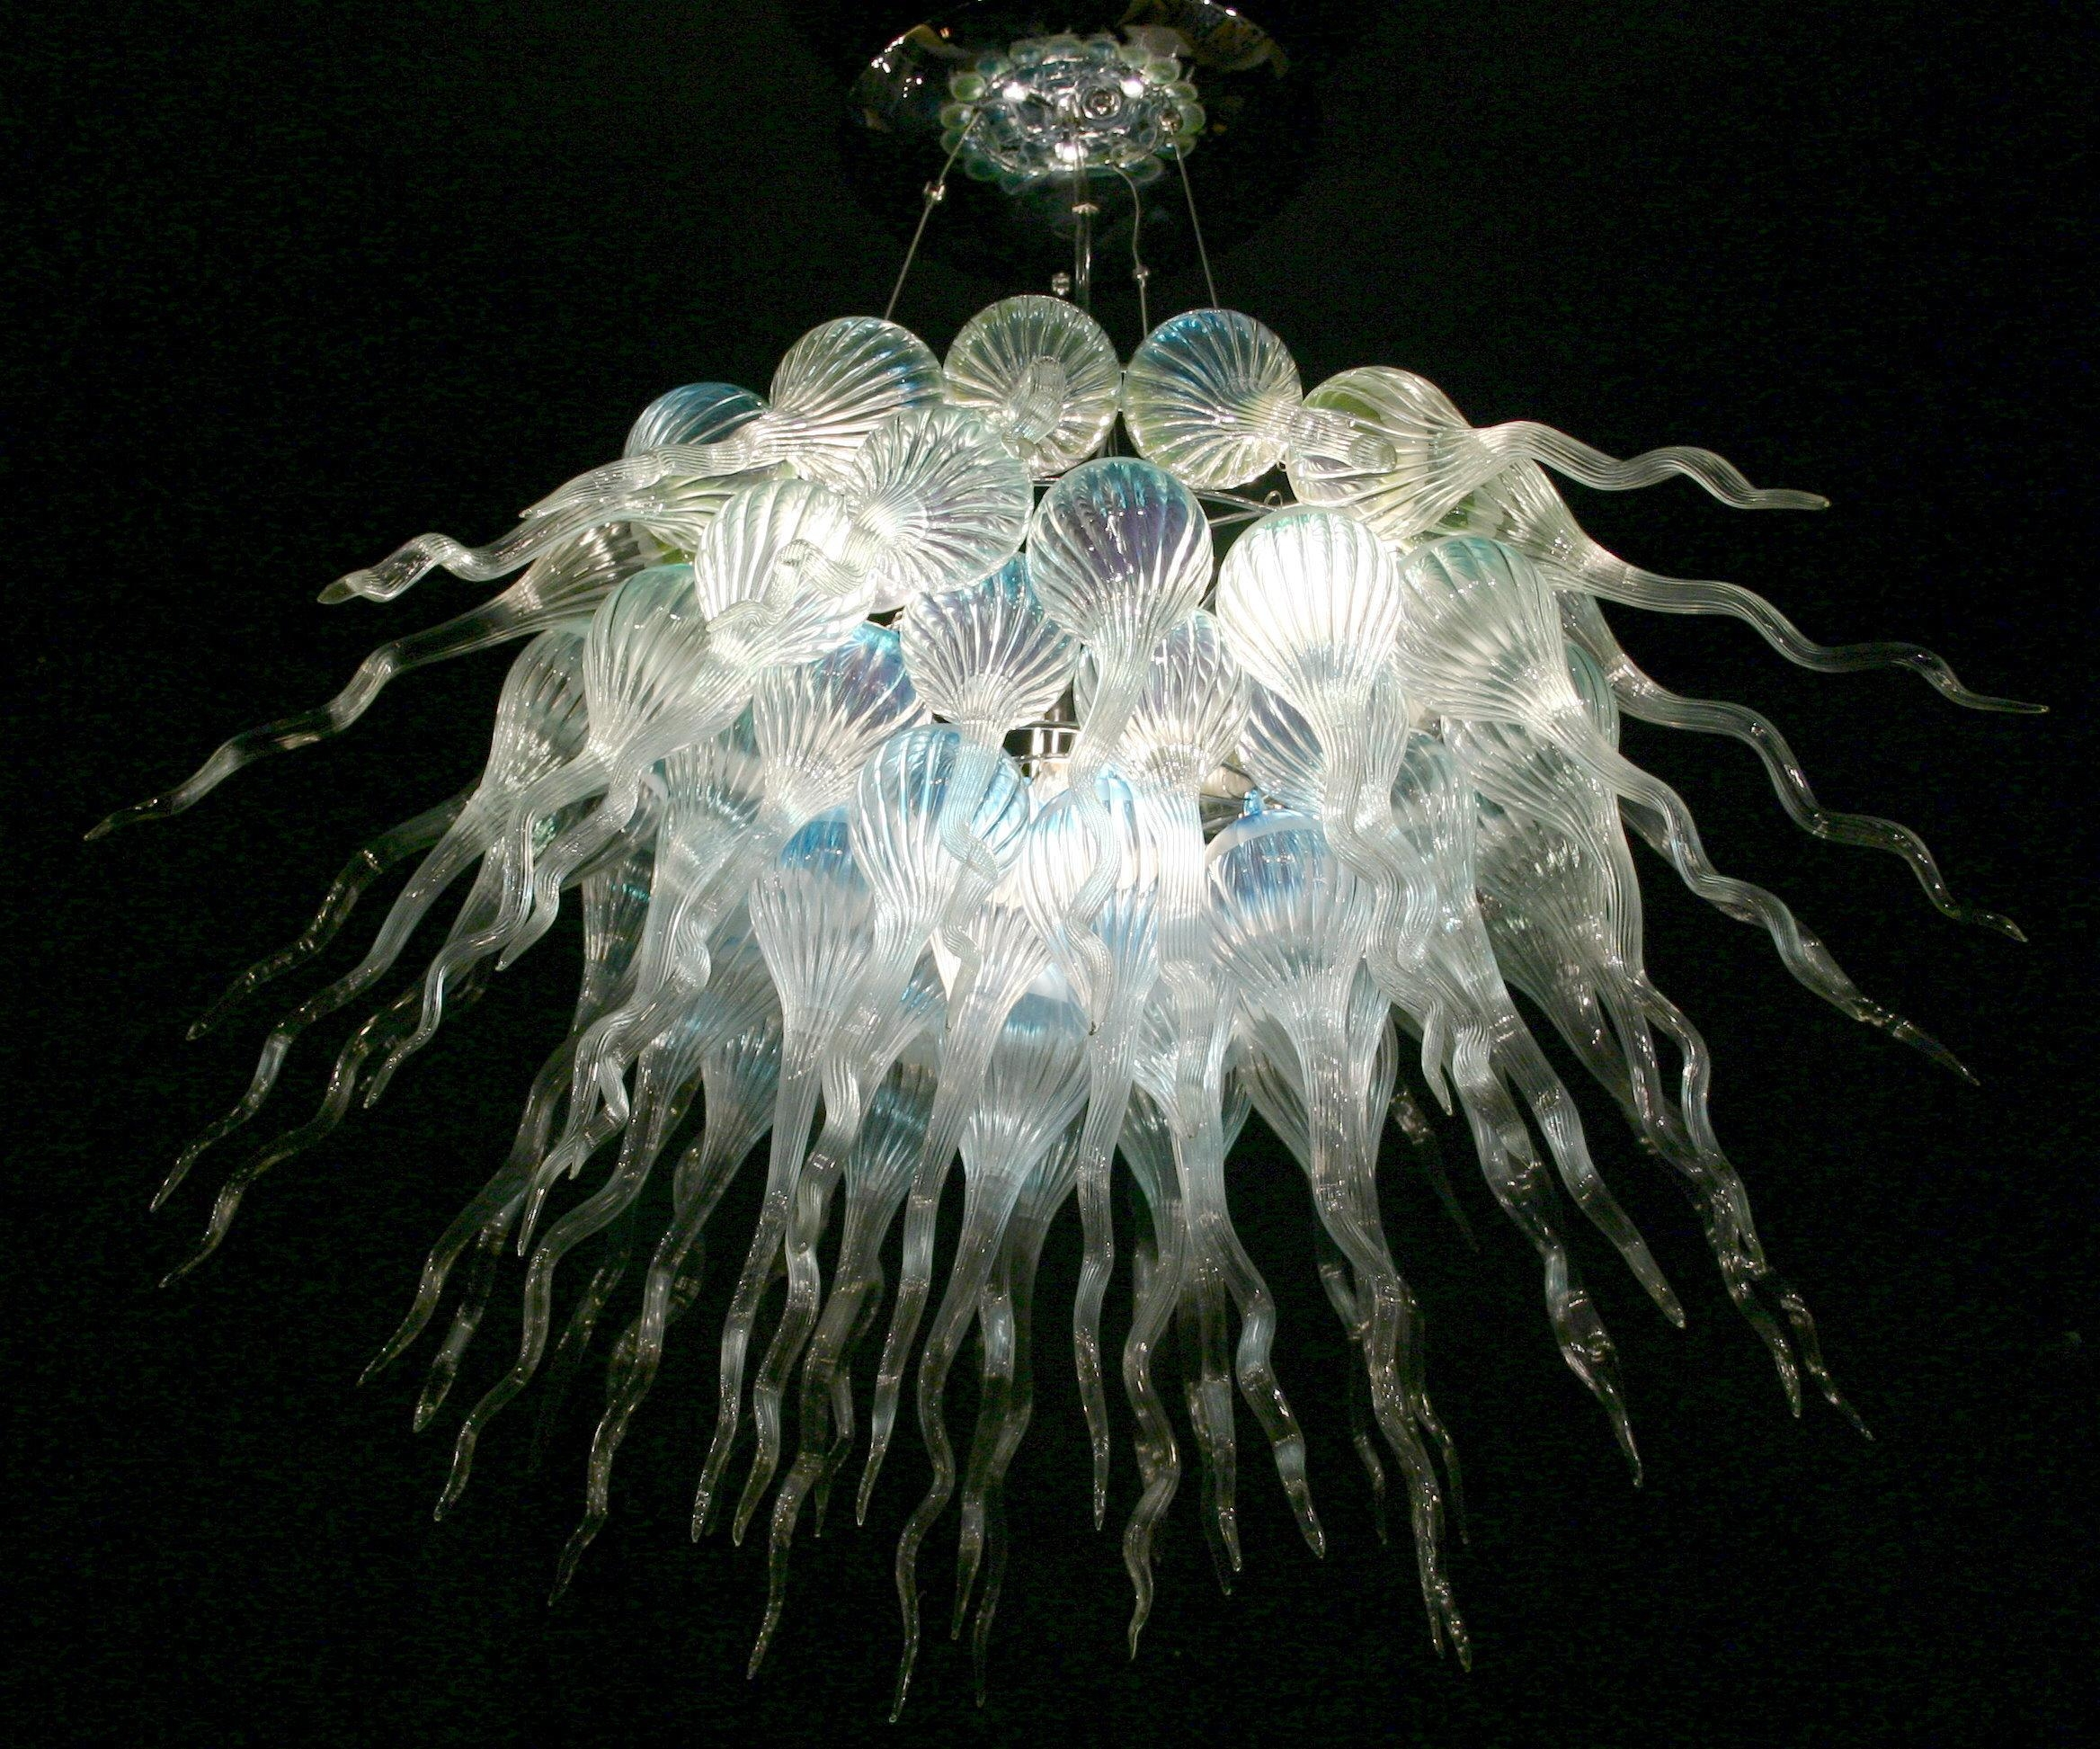 Murano Contemporary Italian Chandeliers Id 18849 Buzzerg Within Italian Chandeliers Contemporary (#12 of 12)